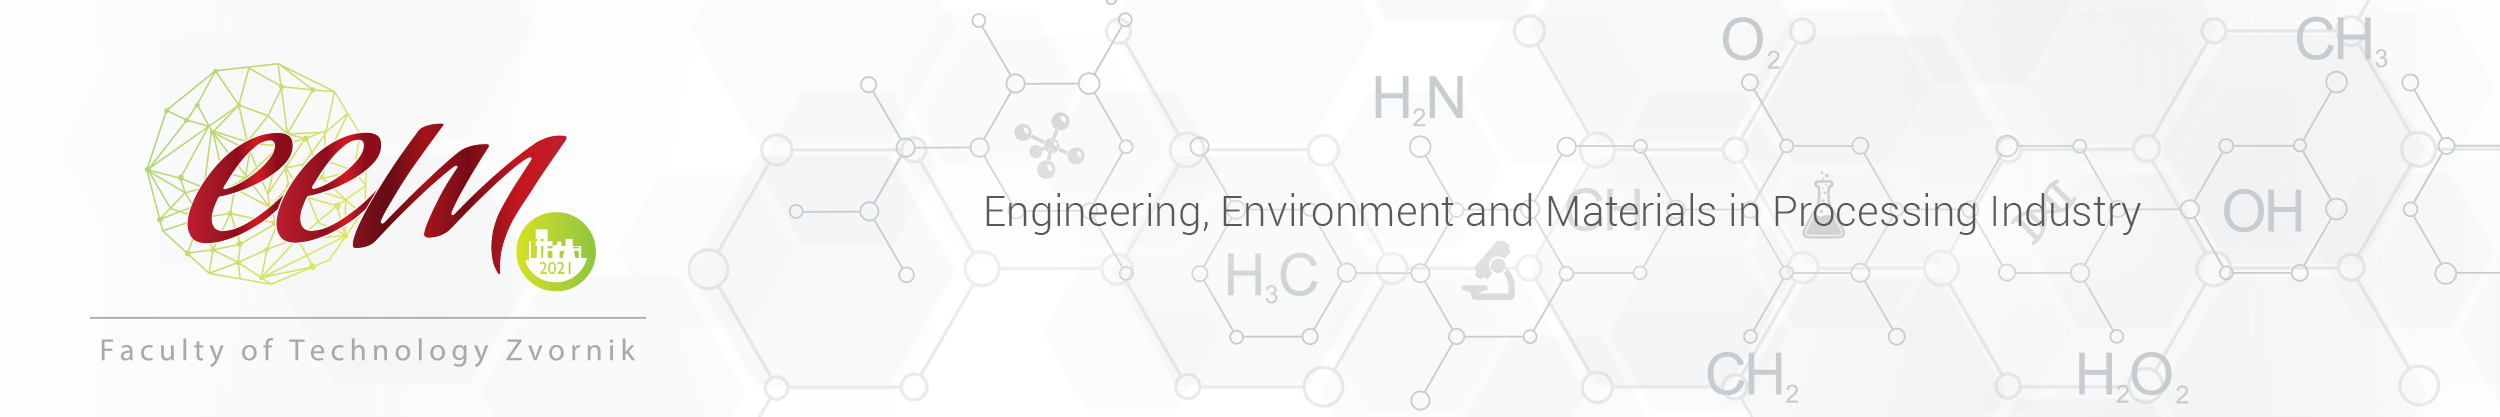 6th International Congress on Engineering, Environment and Materials in Processing Industry